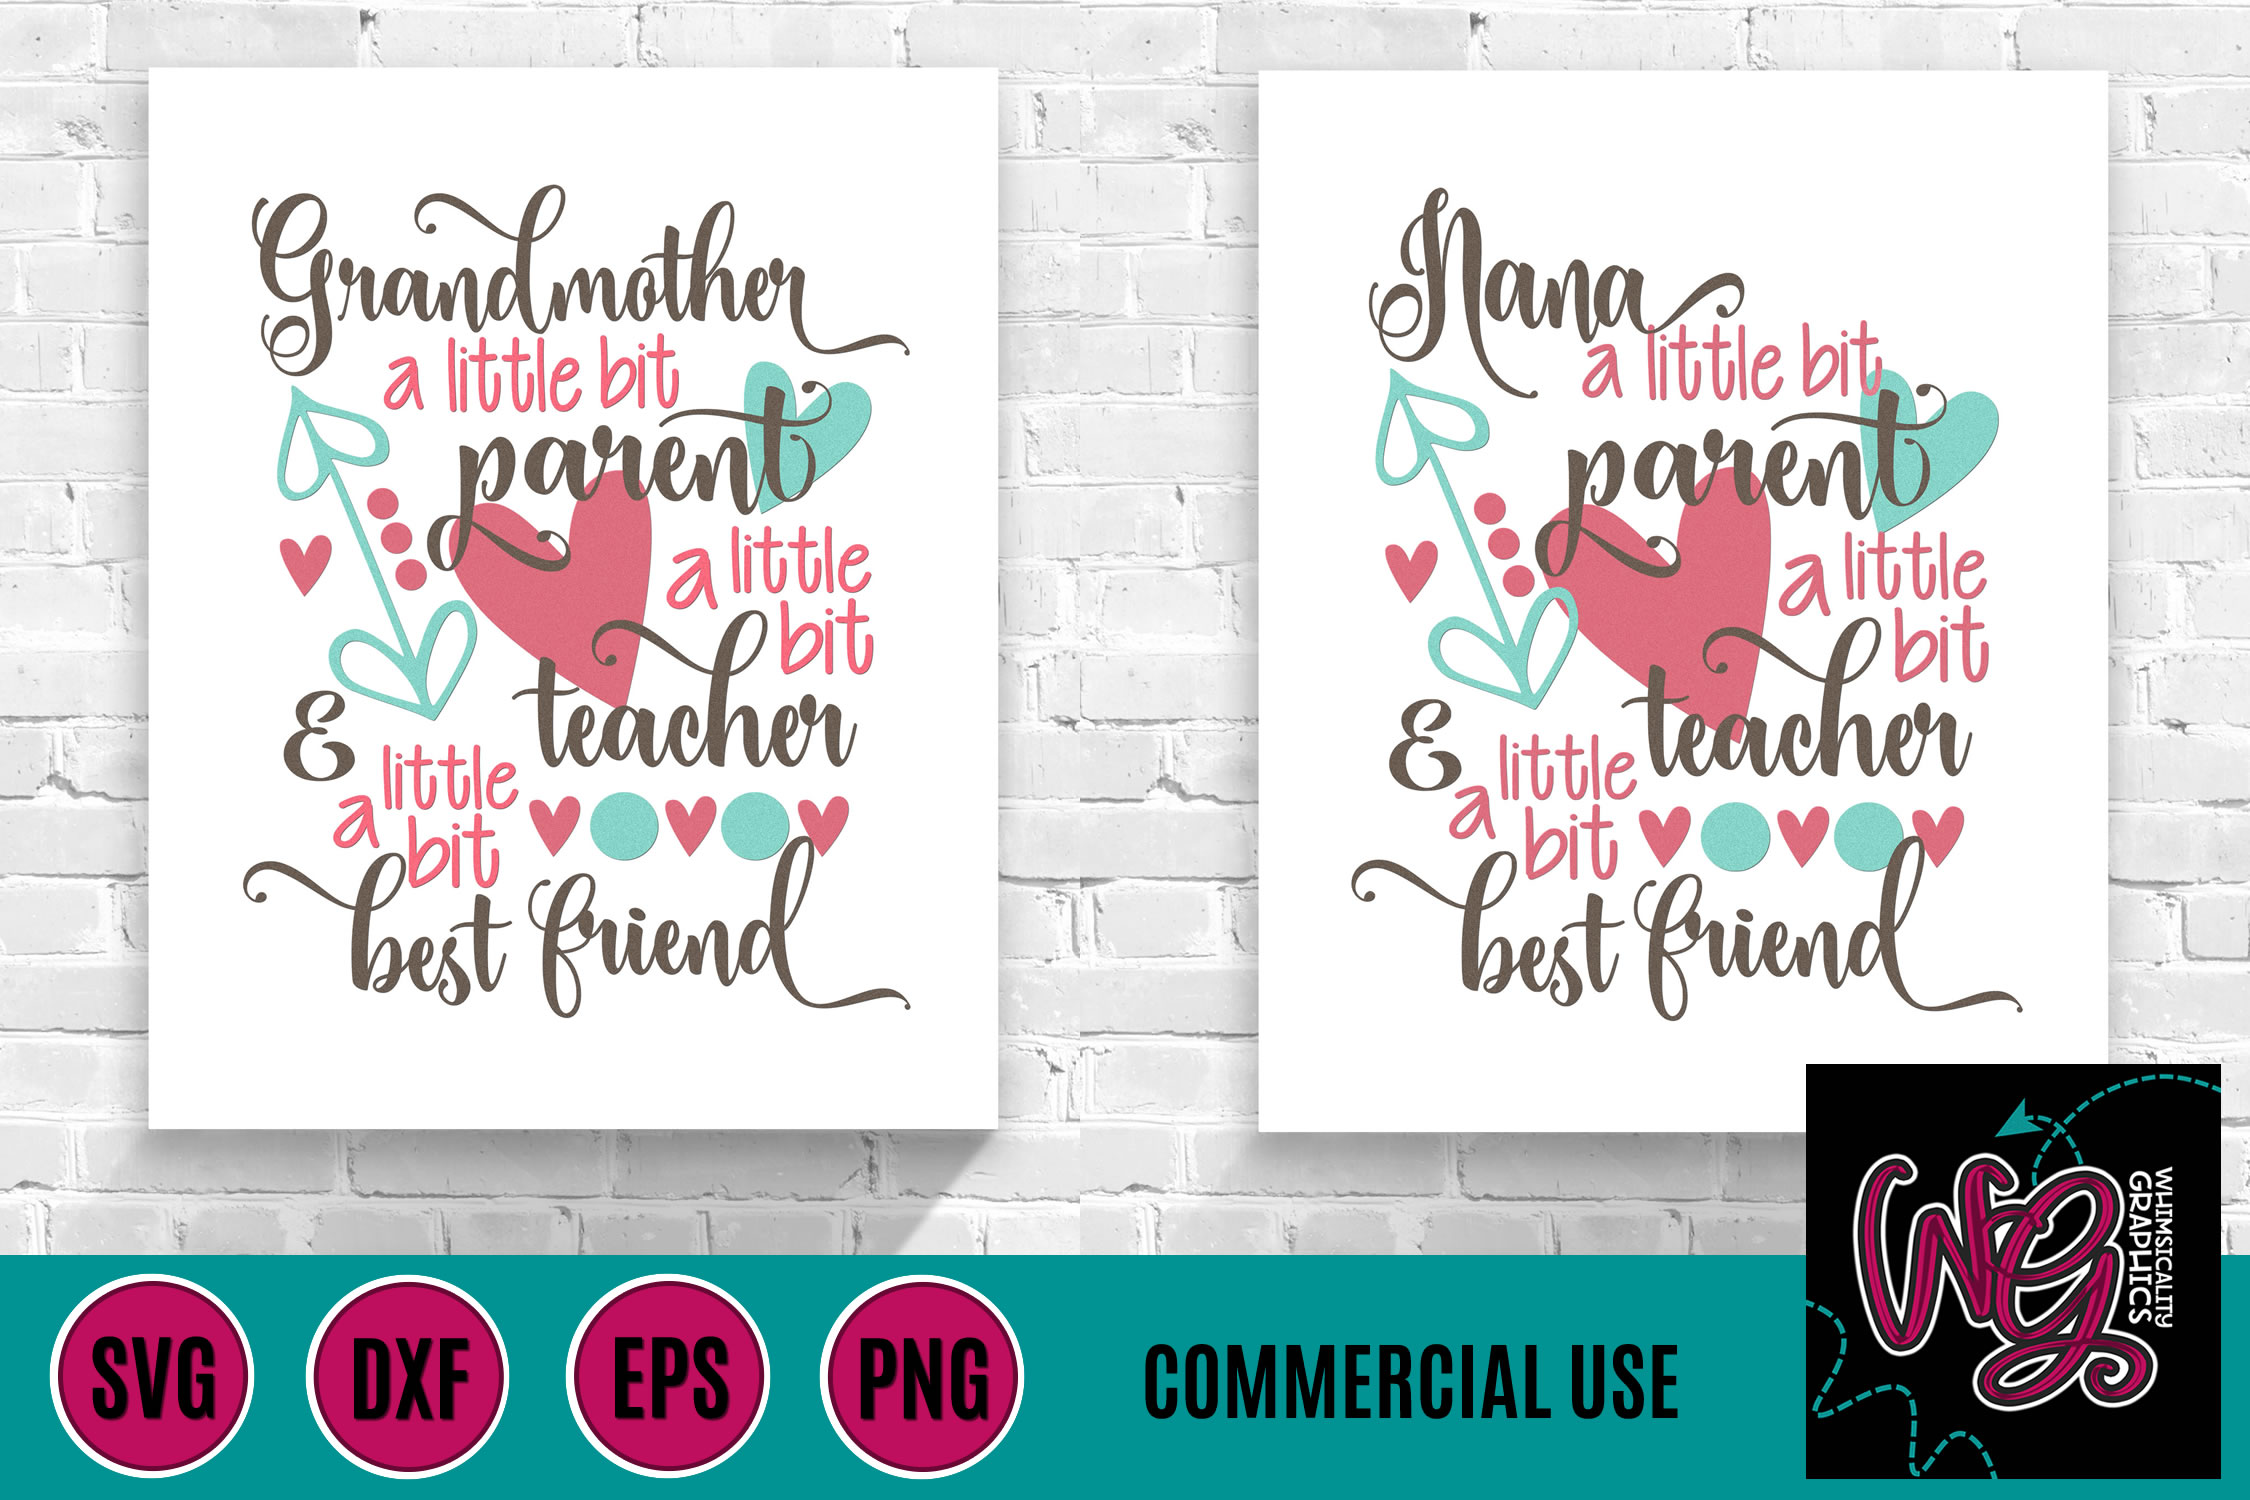 Grandmother Nana Parent Teacher Best Friend SVG DXF PNG EPS example image 1